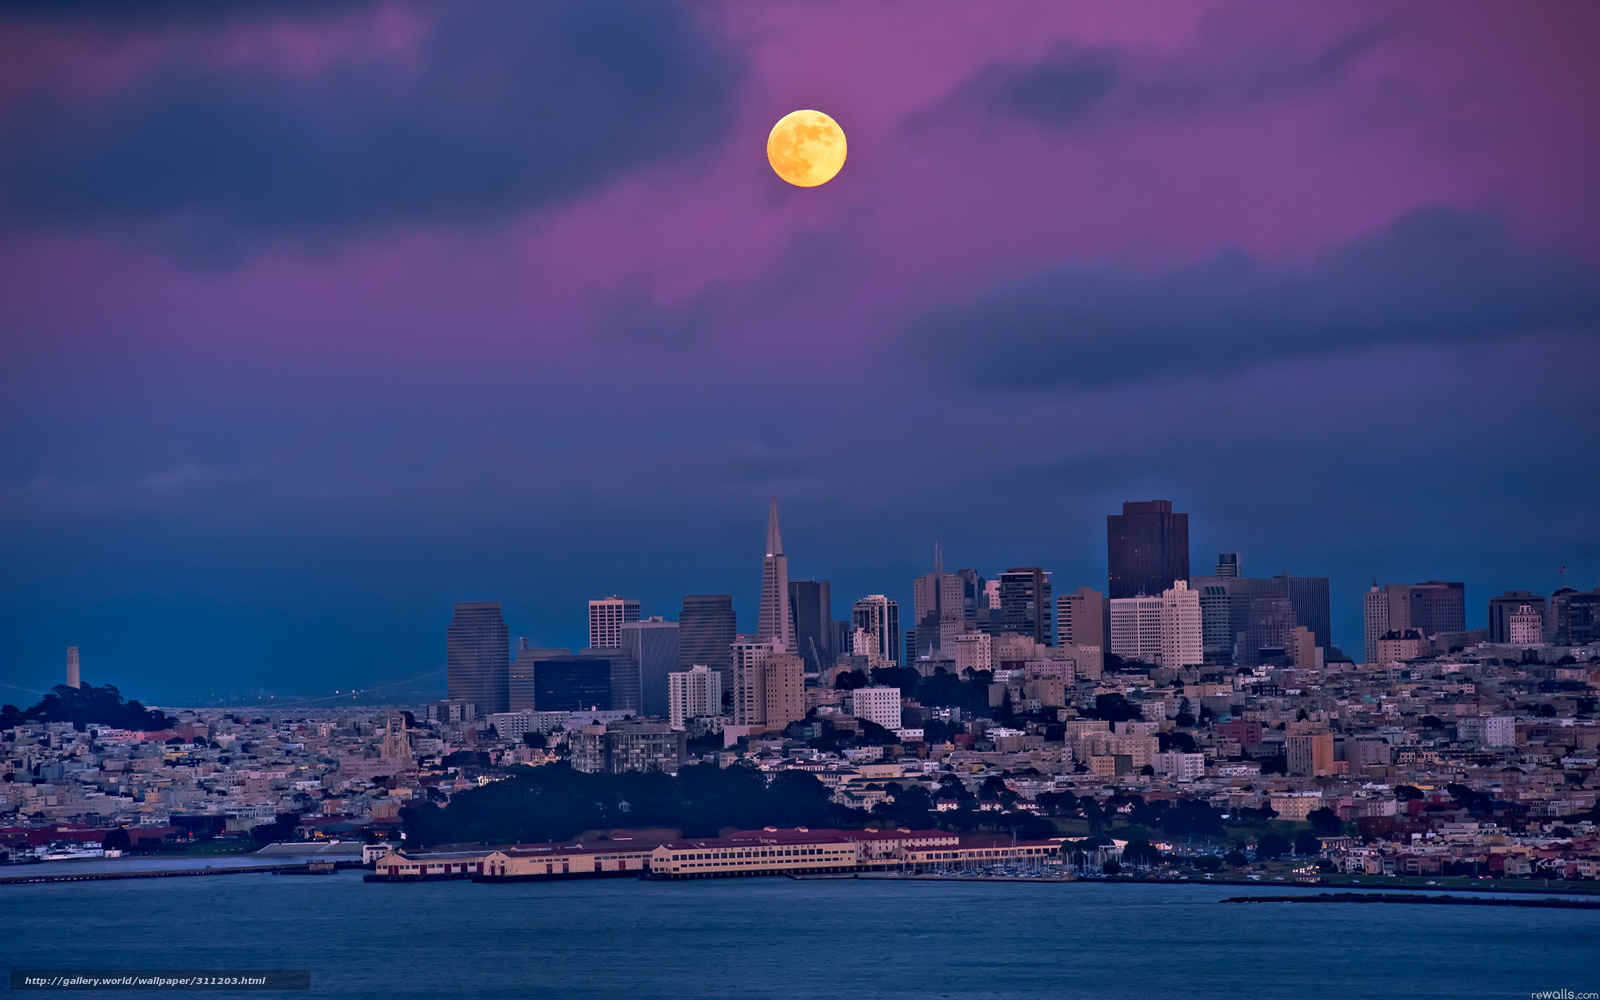 ... ://www.gdefon.com/download/San-Francisco_night_moon/311203/2560x1600